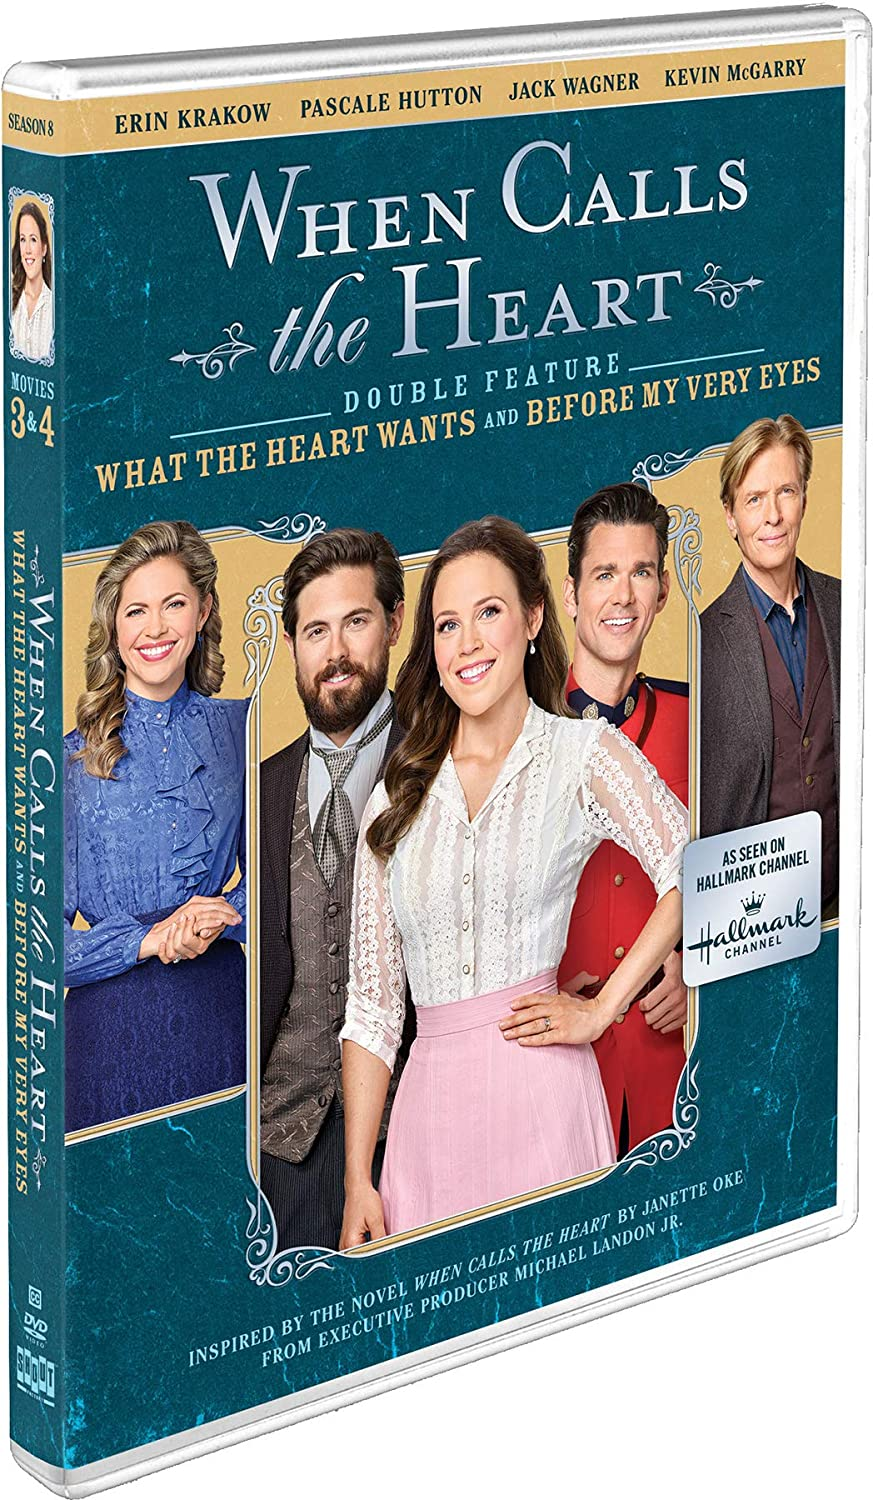 WCTH: HEART WANTS BEFORE Large discharge sale Max 68% OFF EYES DVD